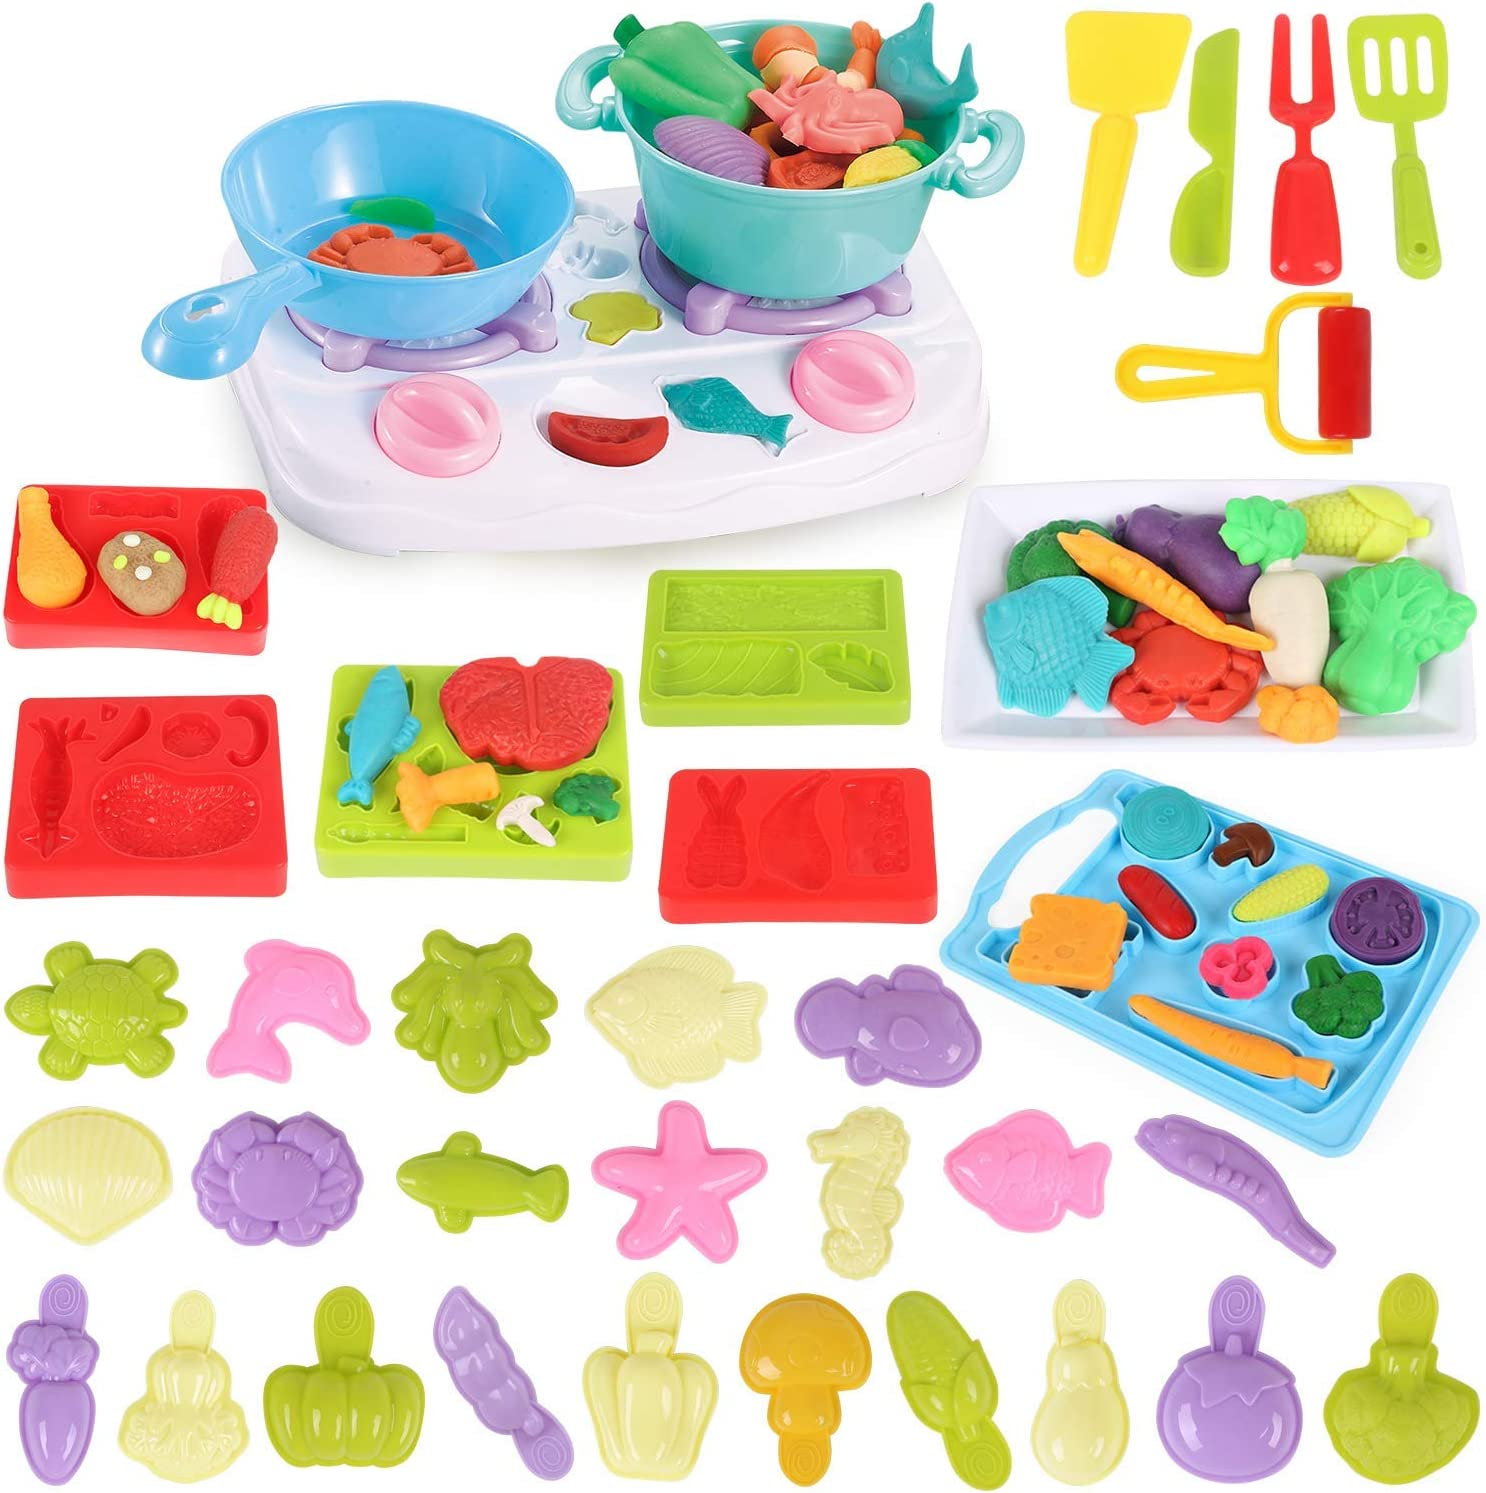 Pony Toy Playdough Kitchen Pretend Play Accessories Creations Set for boys and girls,Contains No Dough